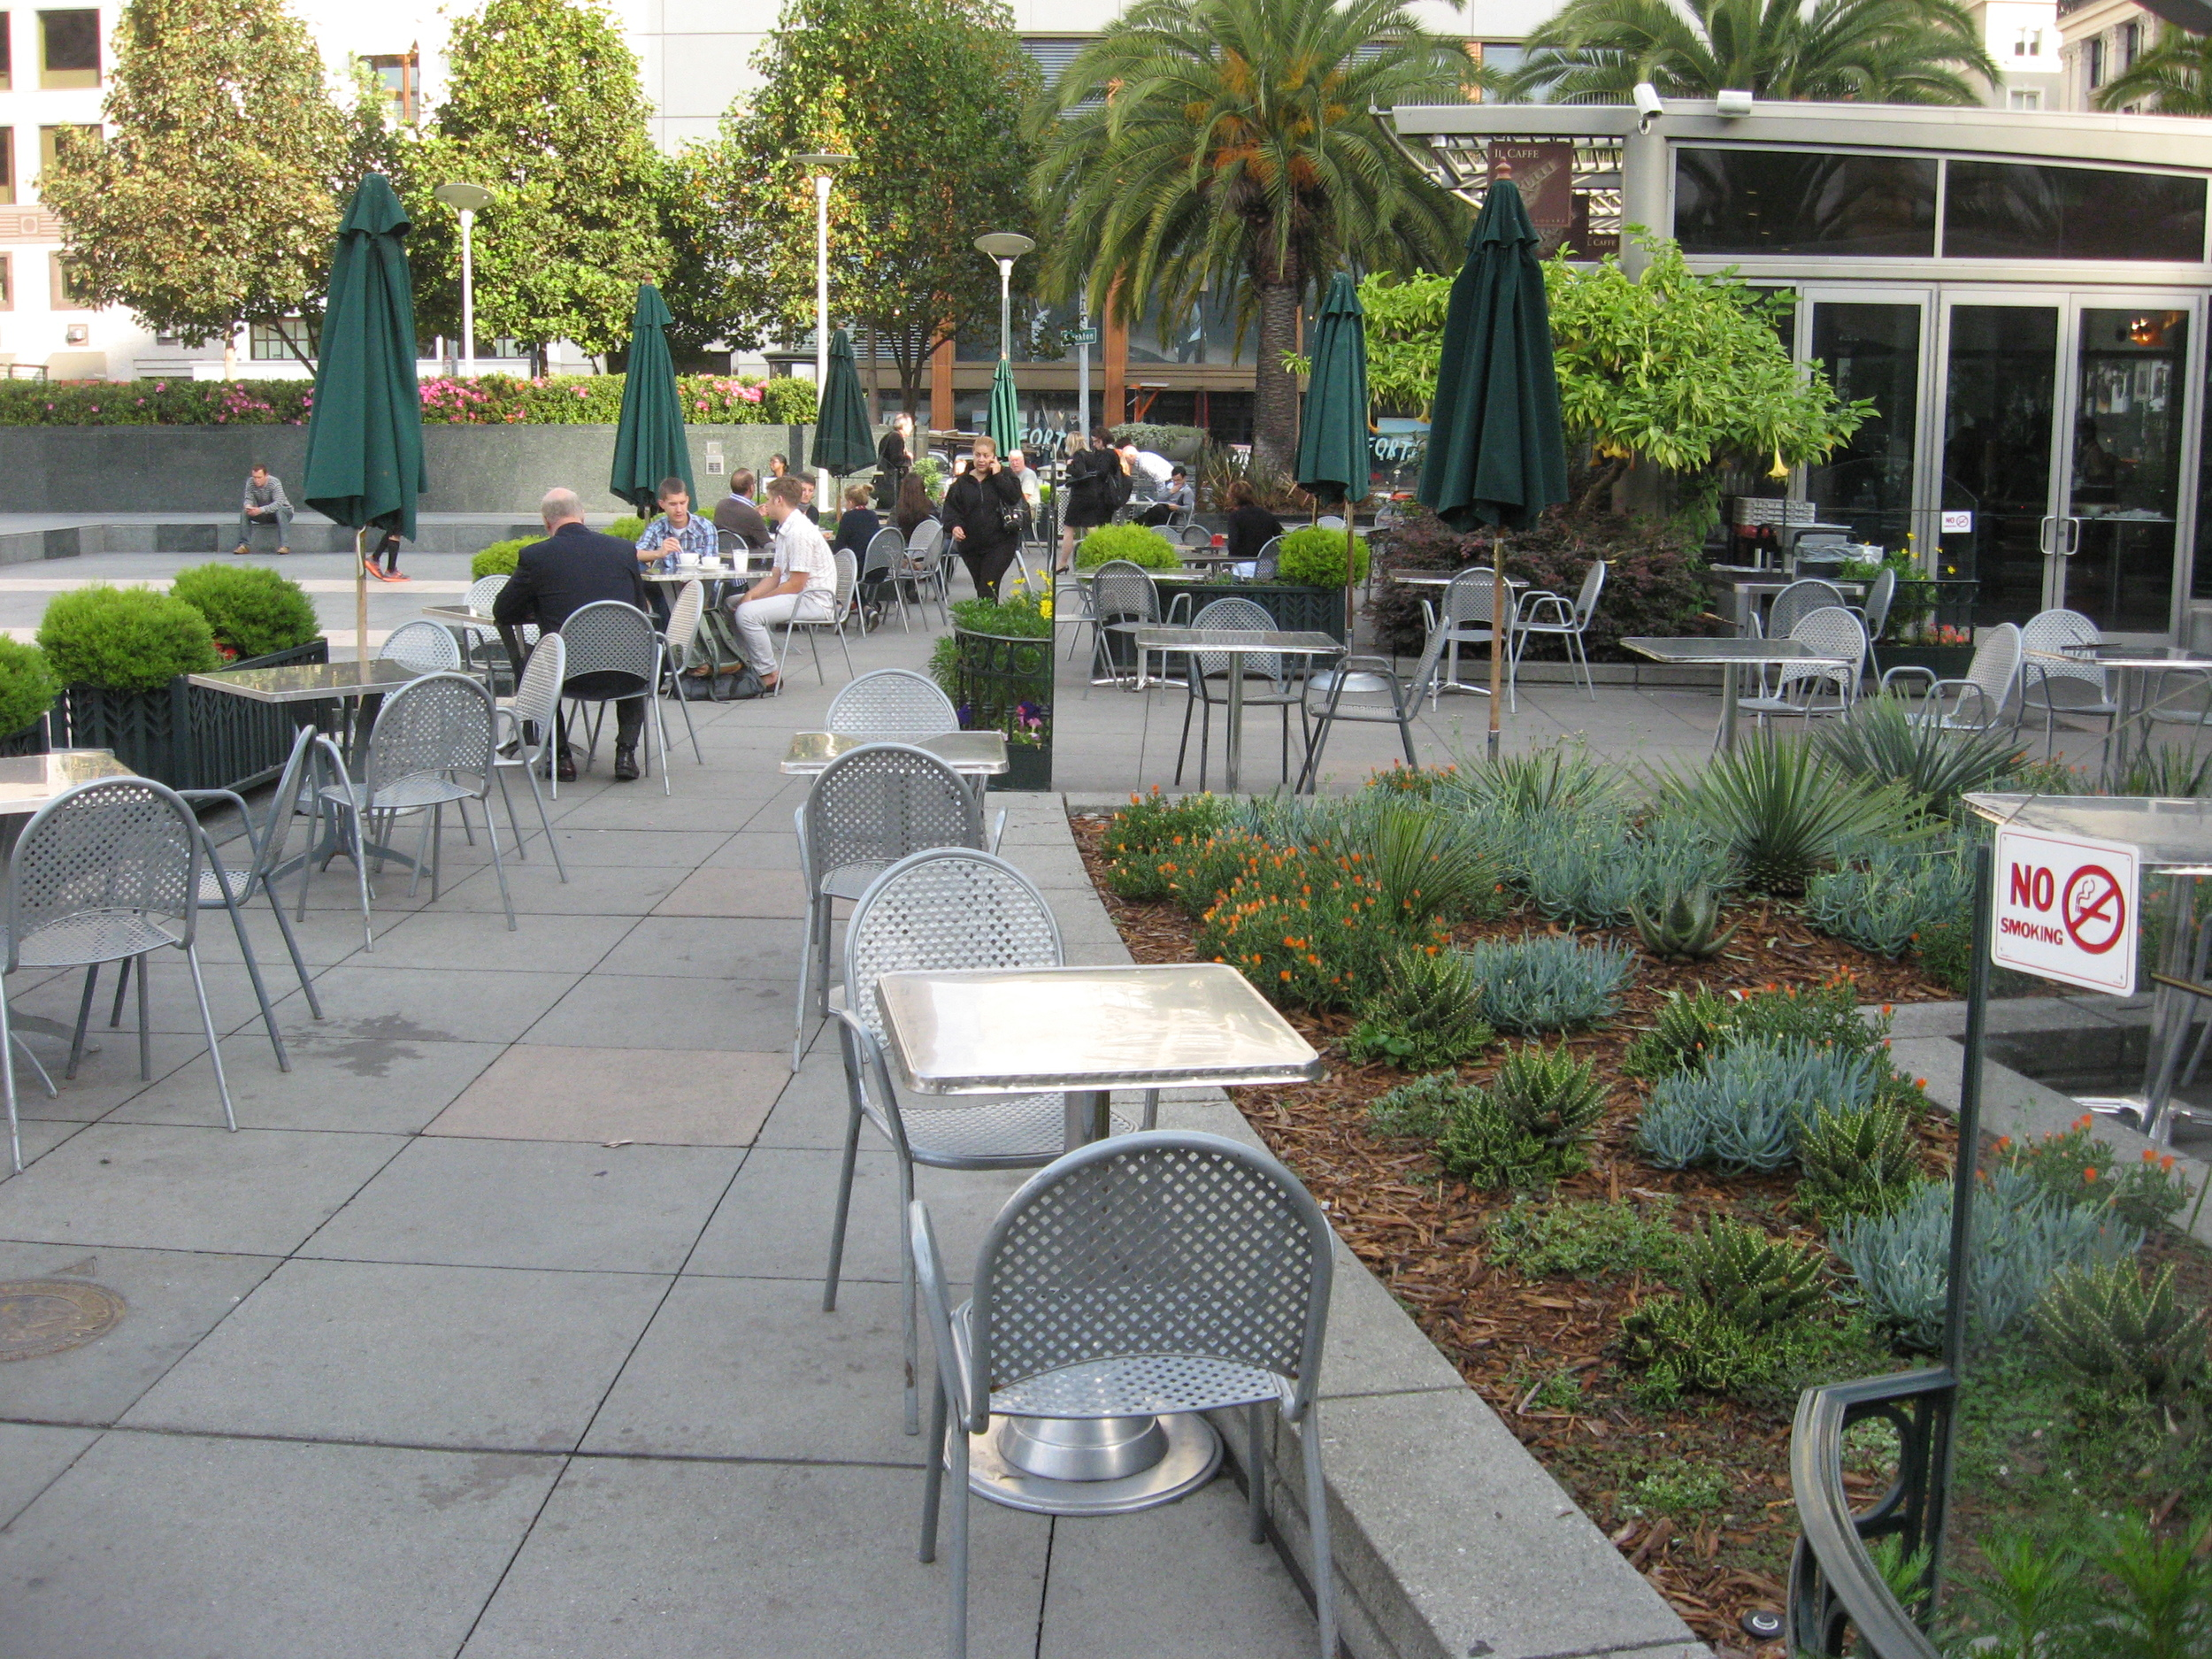 Outdoor patio on Union Square in San Francisco is warm and inviting.